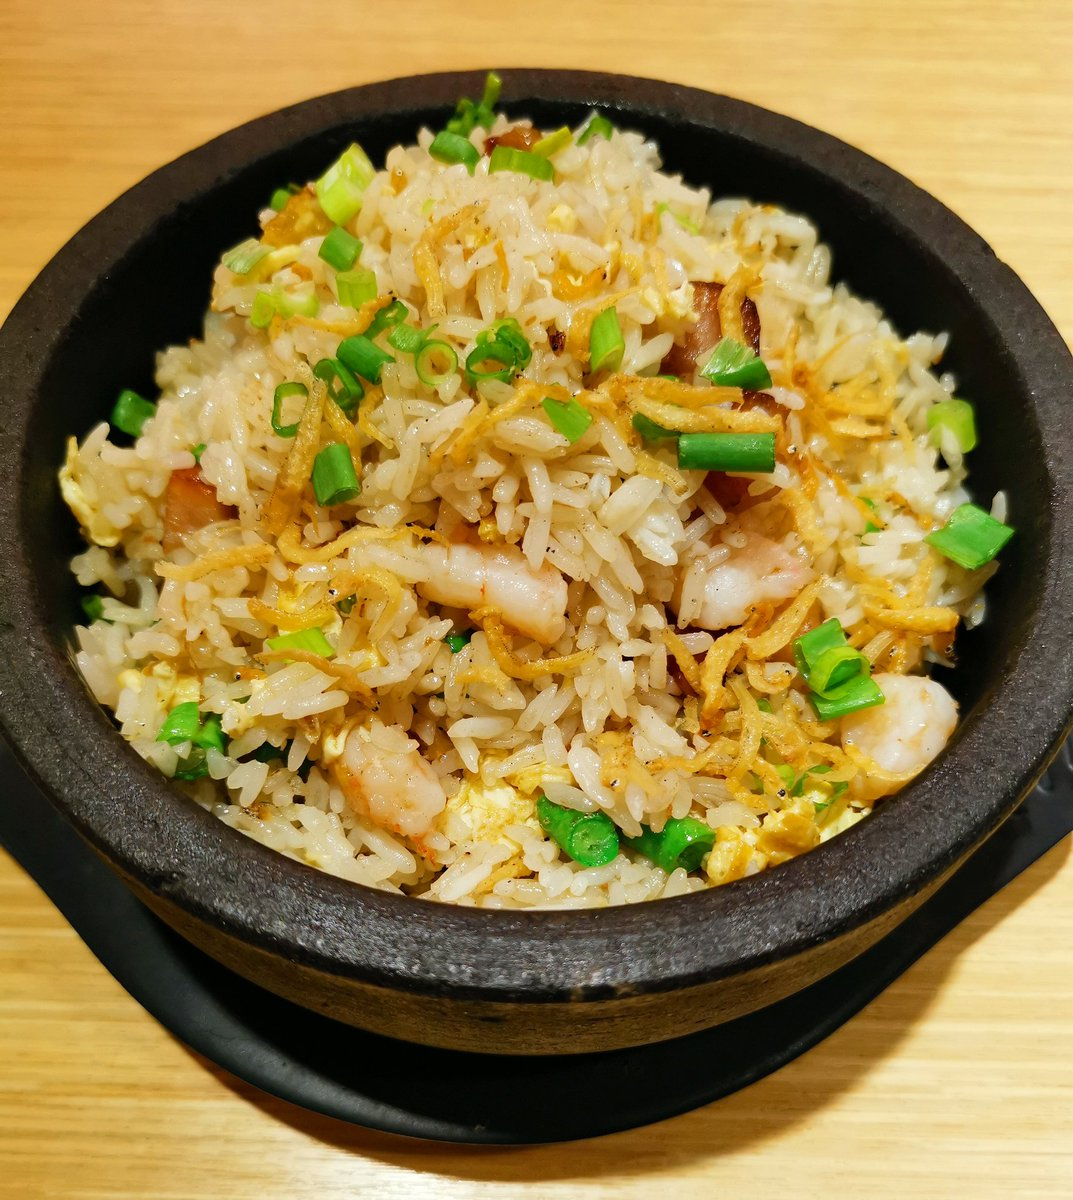 Yangzhou Fried Rice 🥡🍚🥢 #friedrice #arrozfrito #lunch #almuerzo #ketodiet #healthy #fitness #lifestyle #coffee #tea #dinein #eatout #abendessen #ChineseFood #restaurant #炒飯 #扬州炒饭 #料理写真 #おいしい #저녁식사 https://t.co/x5Q1KwJze5